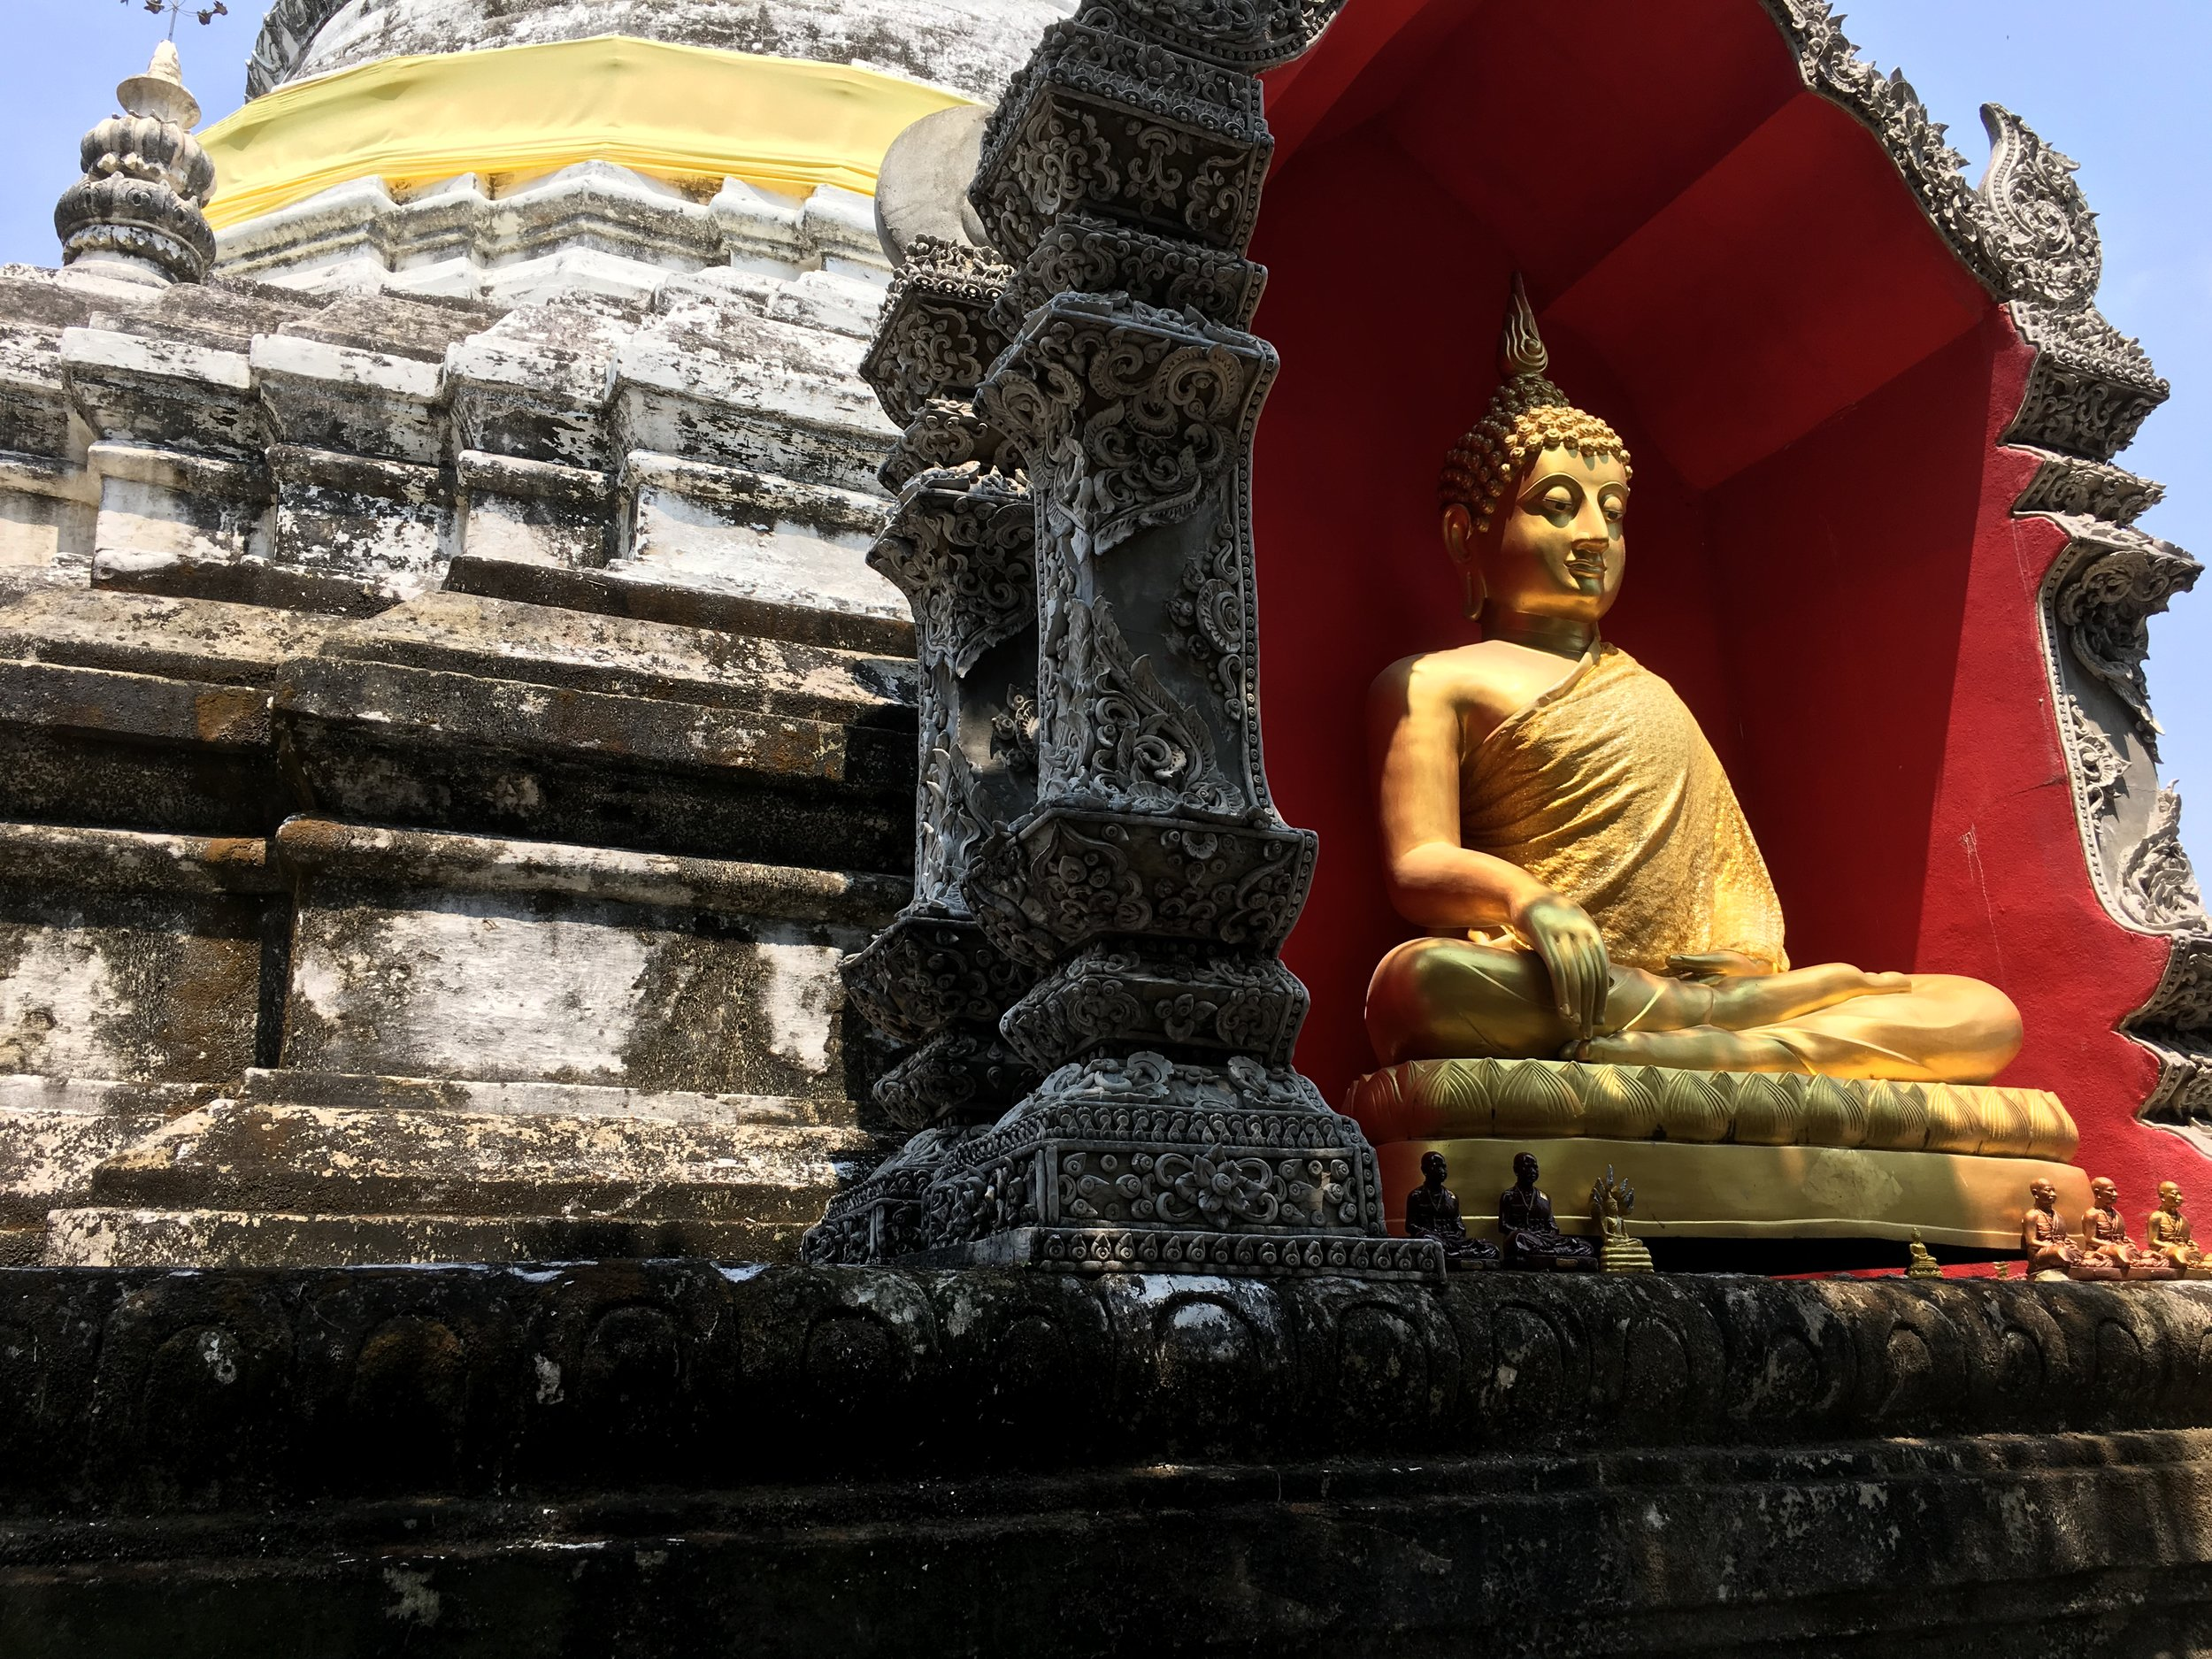 This Buddha in a red niche is one of four at the base of the tower that is said to hold a sacred relic